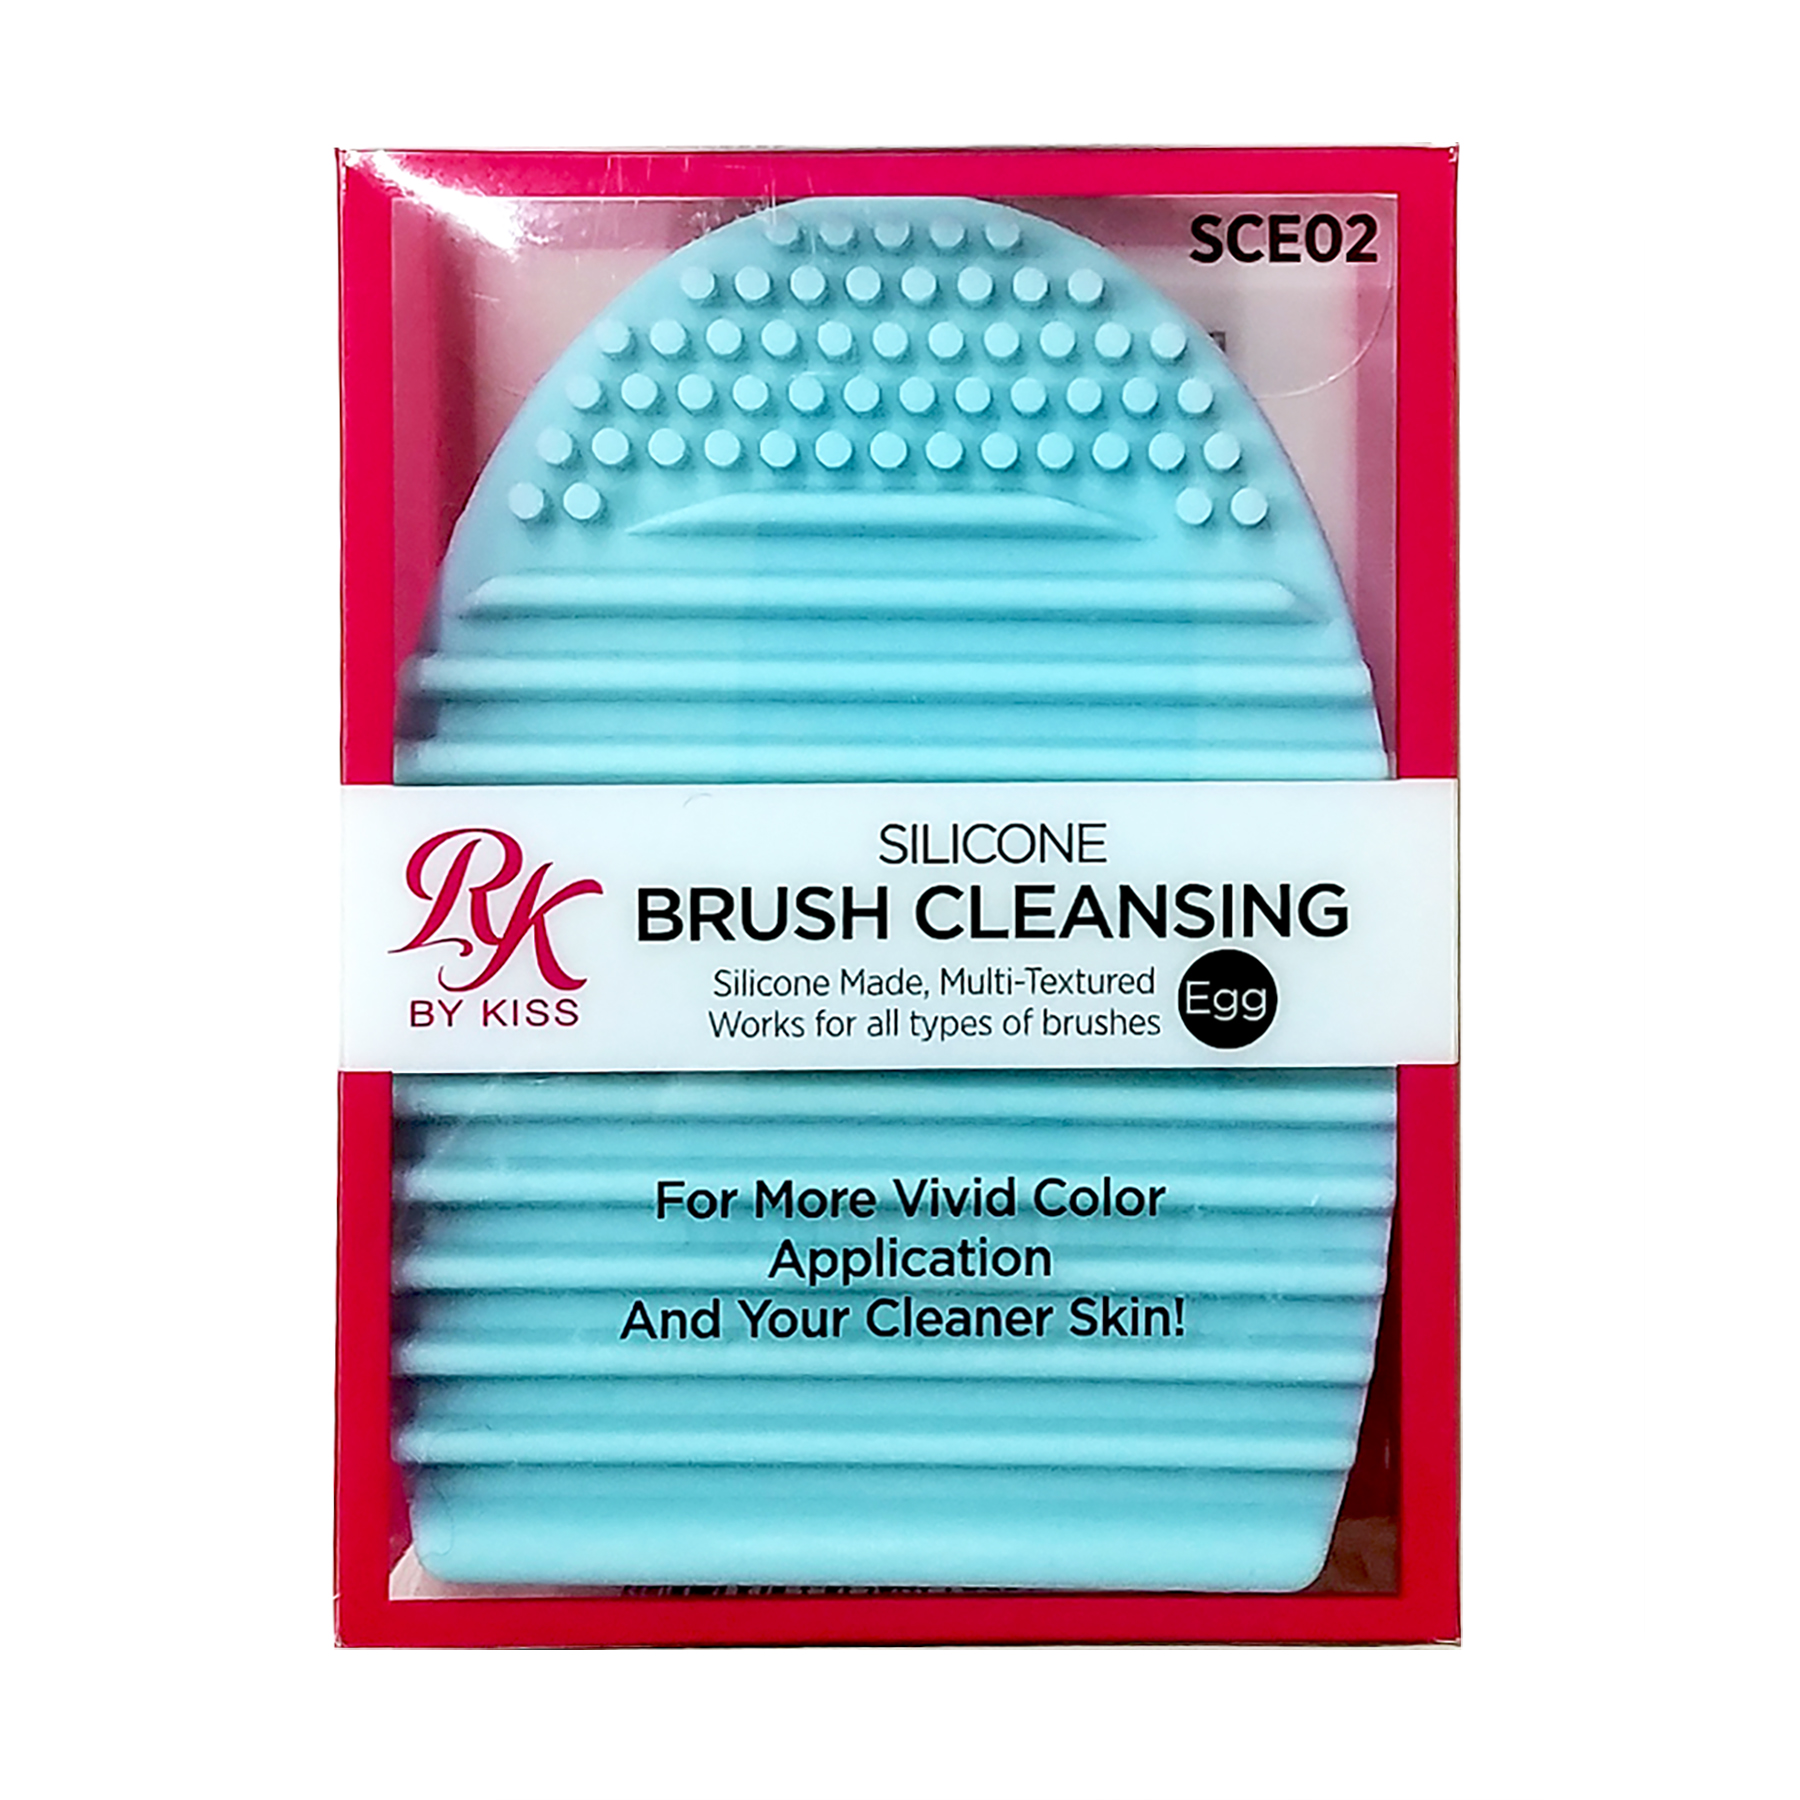 Ruby Kisses Silicone Makeup Brush Cleansing Egg Palette